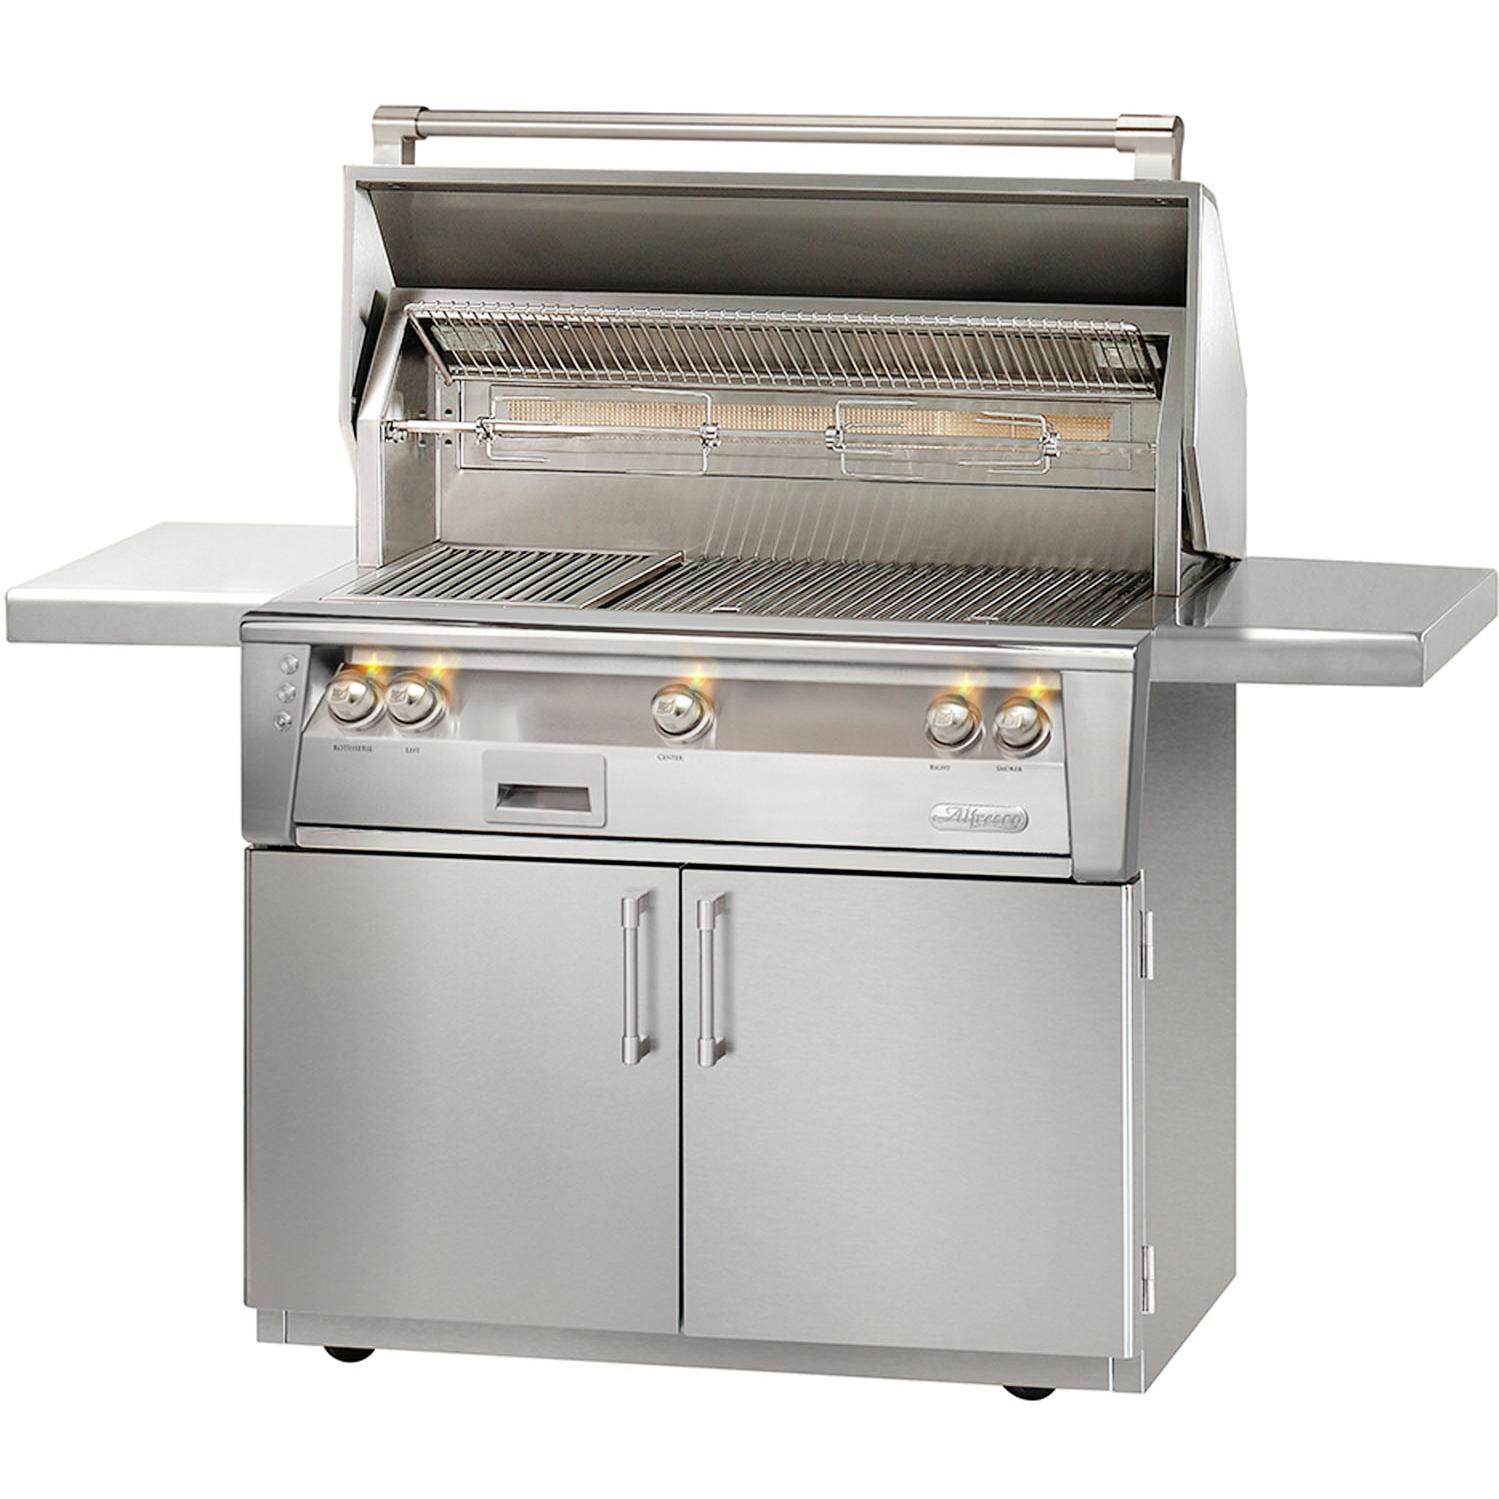 Alfresco LXE 42-Inch Propane Gas Grill On Cart With Sear Zone And Rotisserie - ALXE-42SZC-LP 2911902